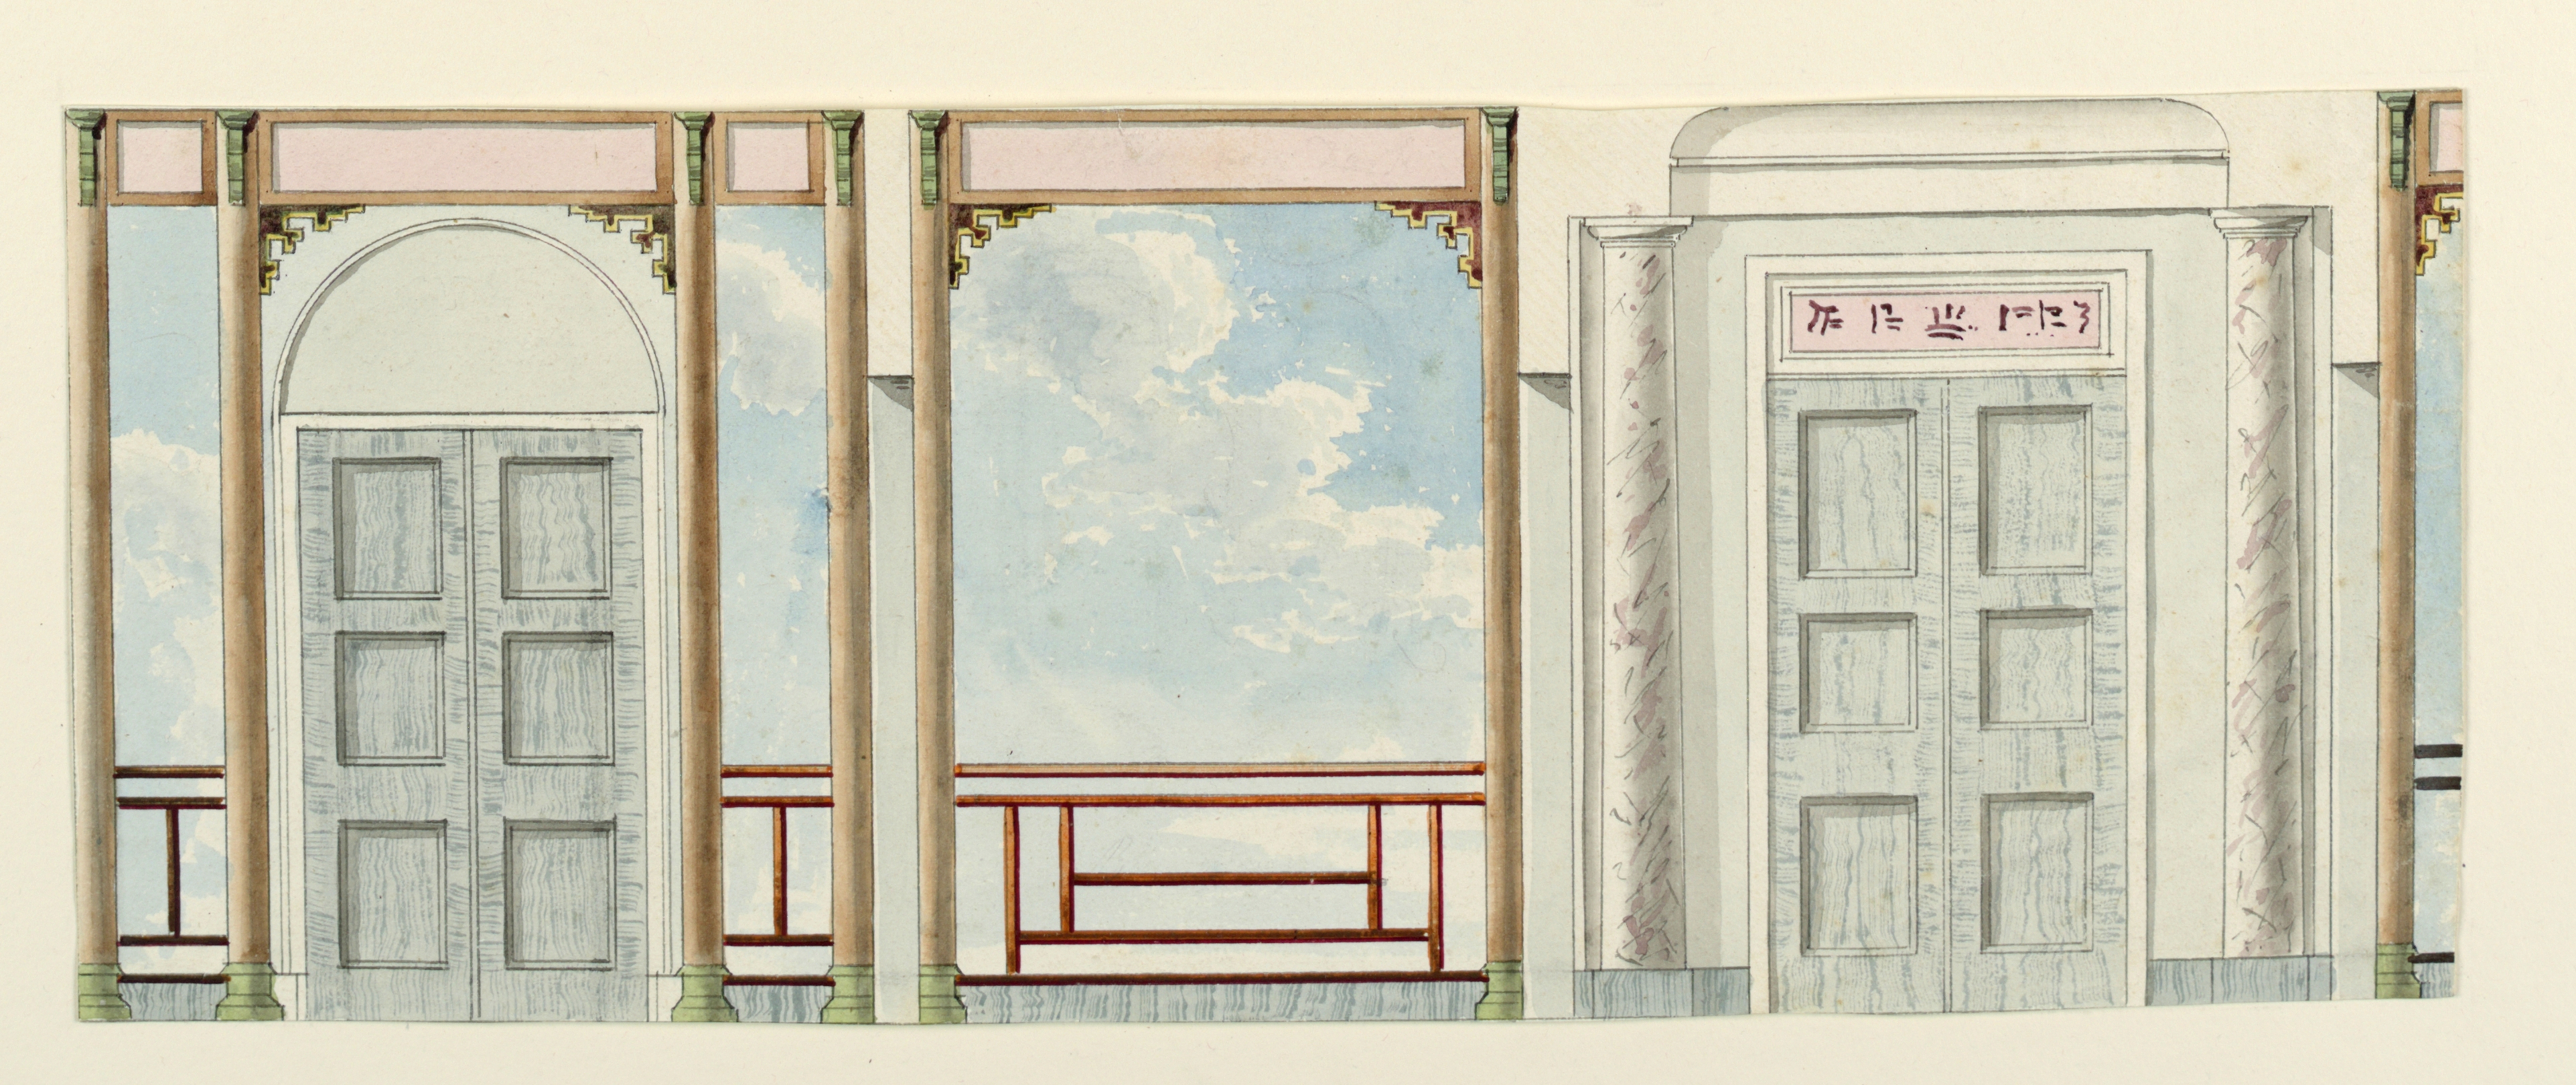 File:Drawing, Wall Decoration And Door With Columns, Royal Pavilion,  Brighton,